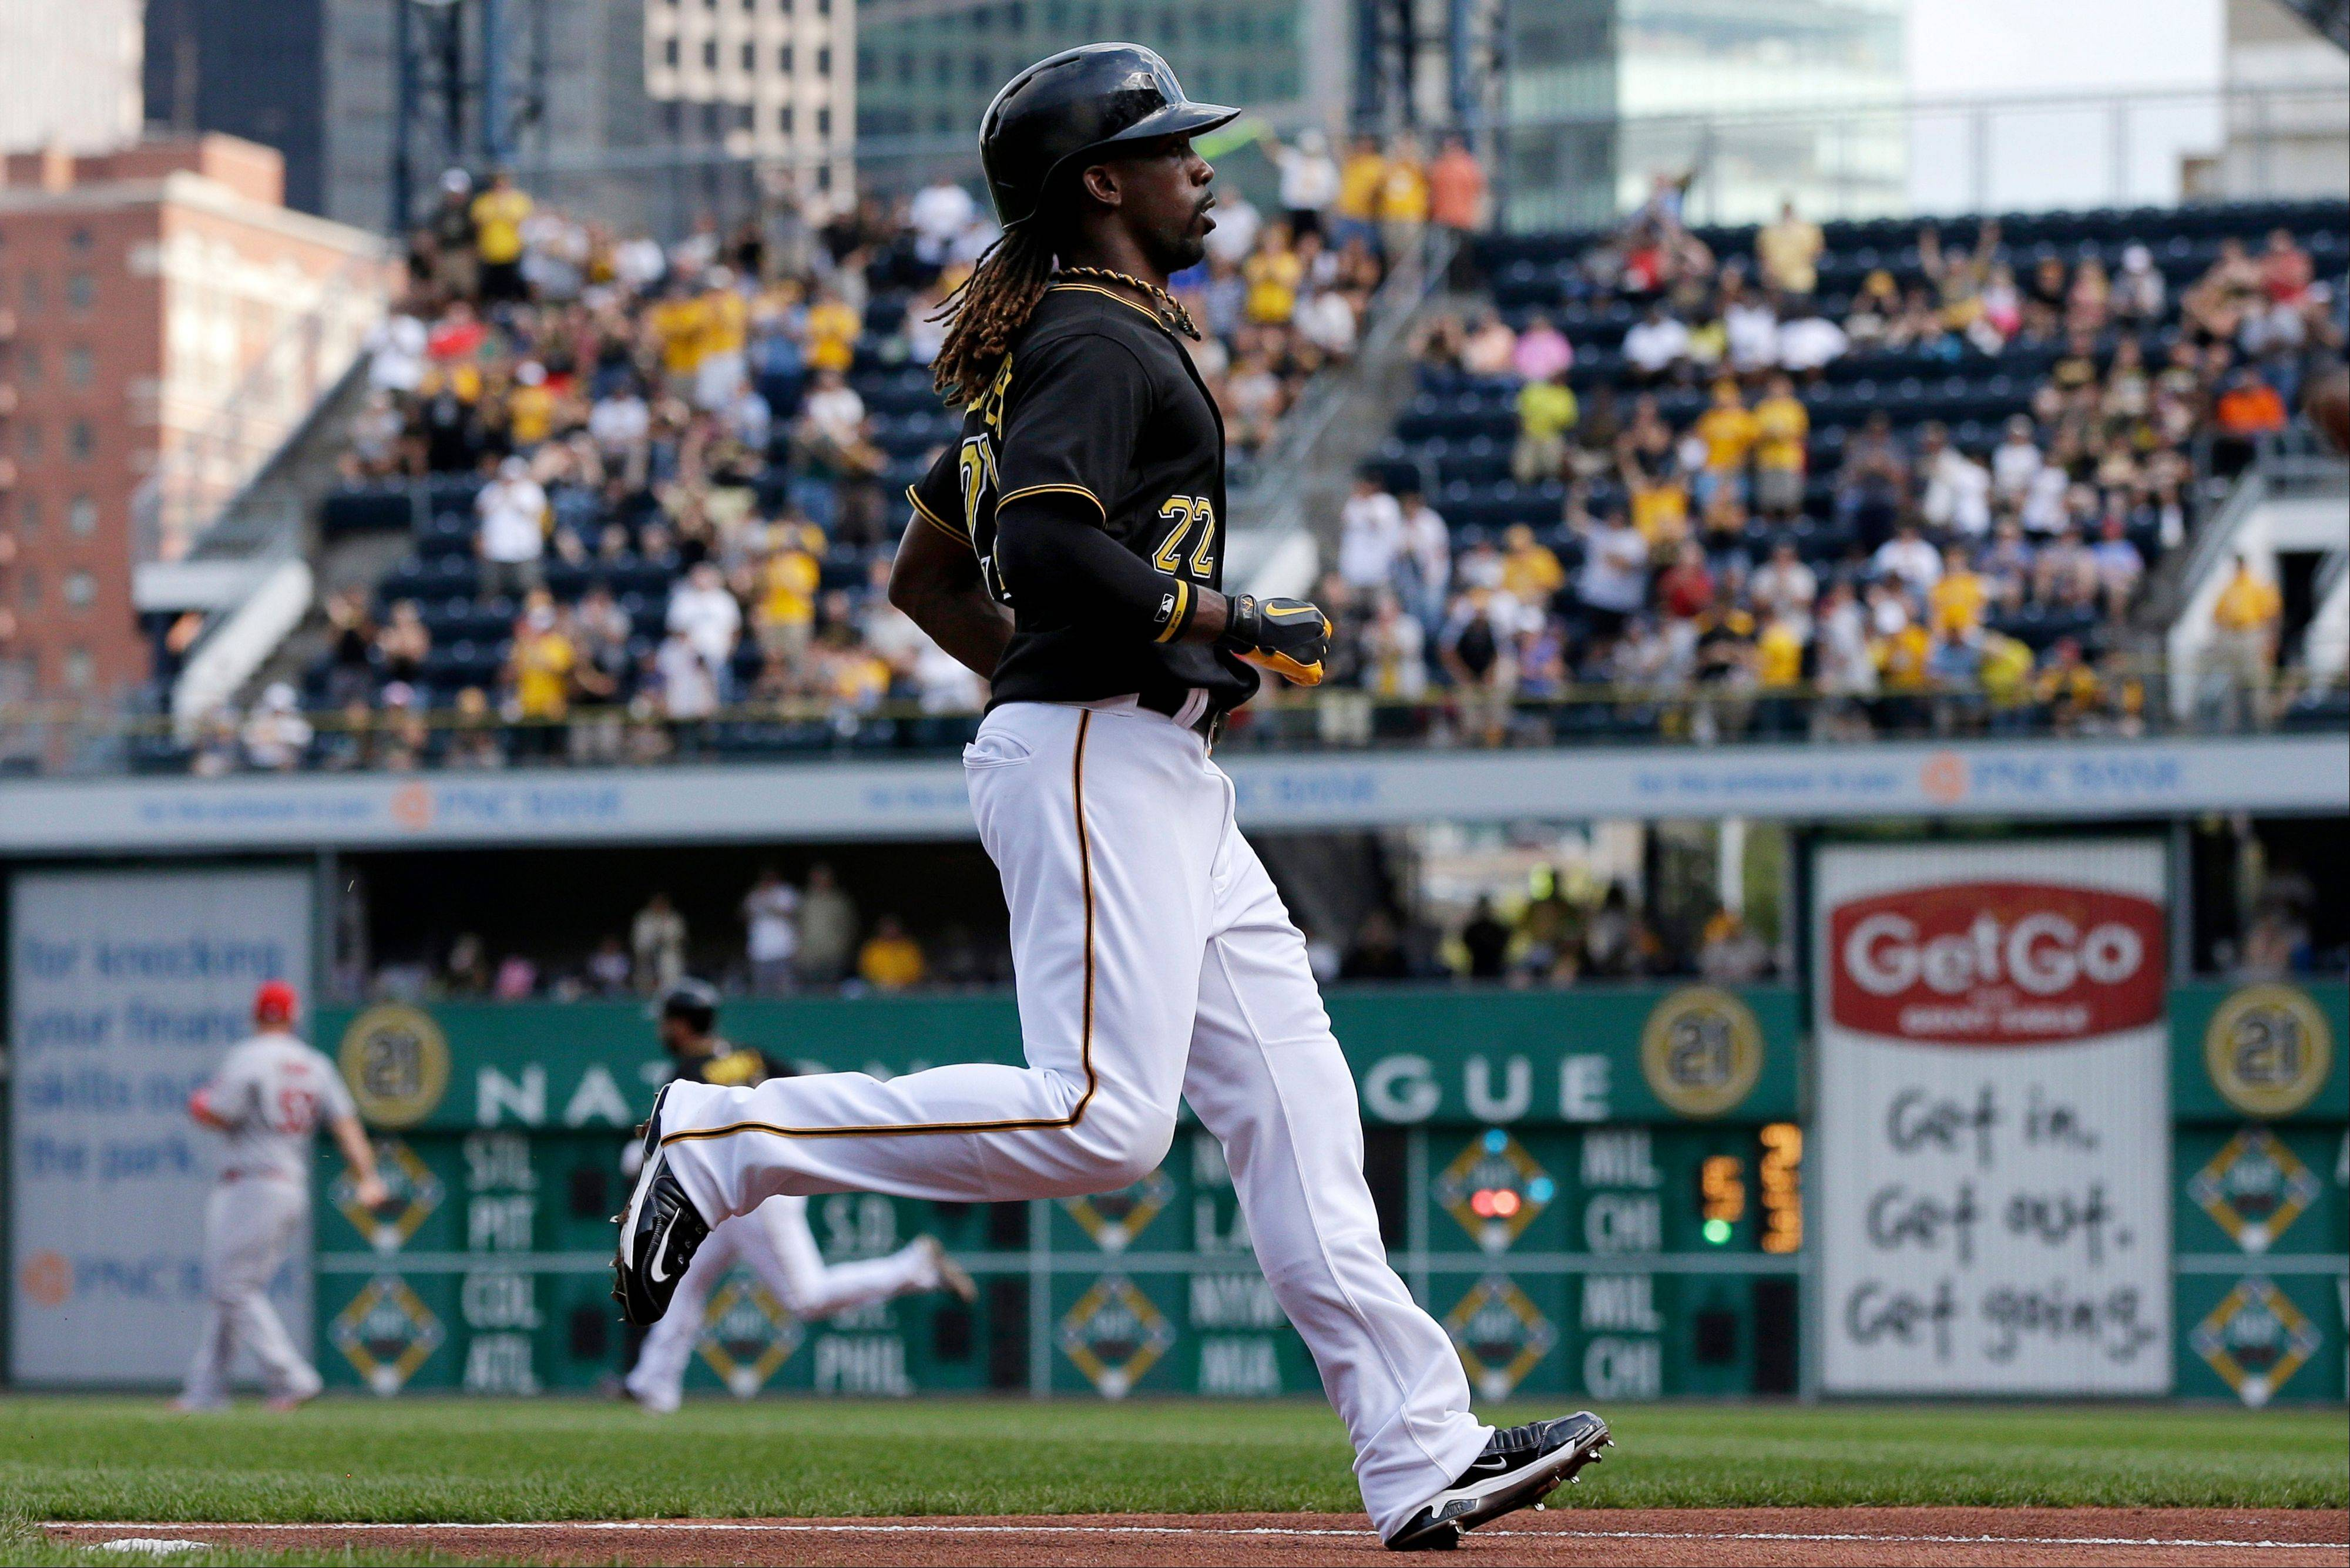 Pittsburgh Pirates� Andrew McCutchen scores on a double by Pedro Alvarez off St. Louis Cardinals starting pitcher Lance Lynn during the first inning of a baseball game in Pittsburgh on Tuesday.